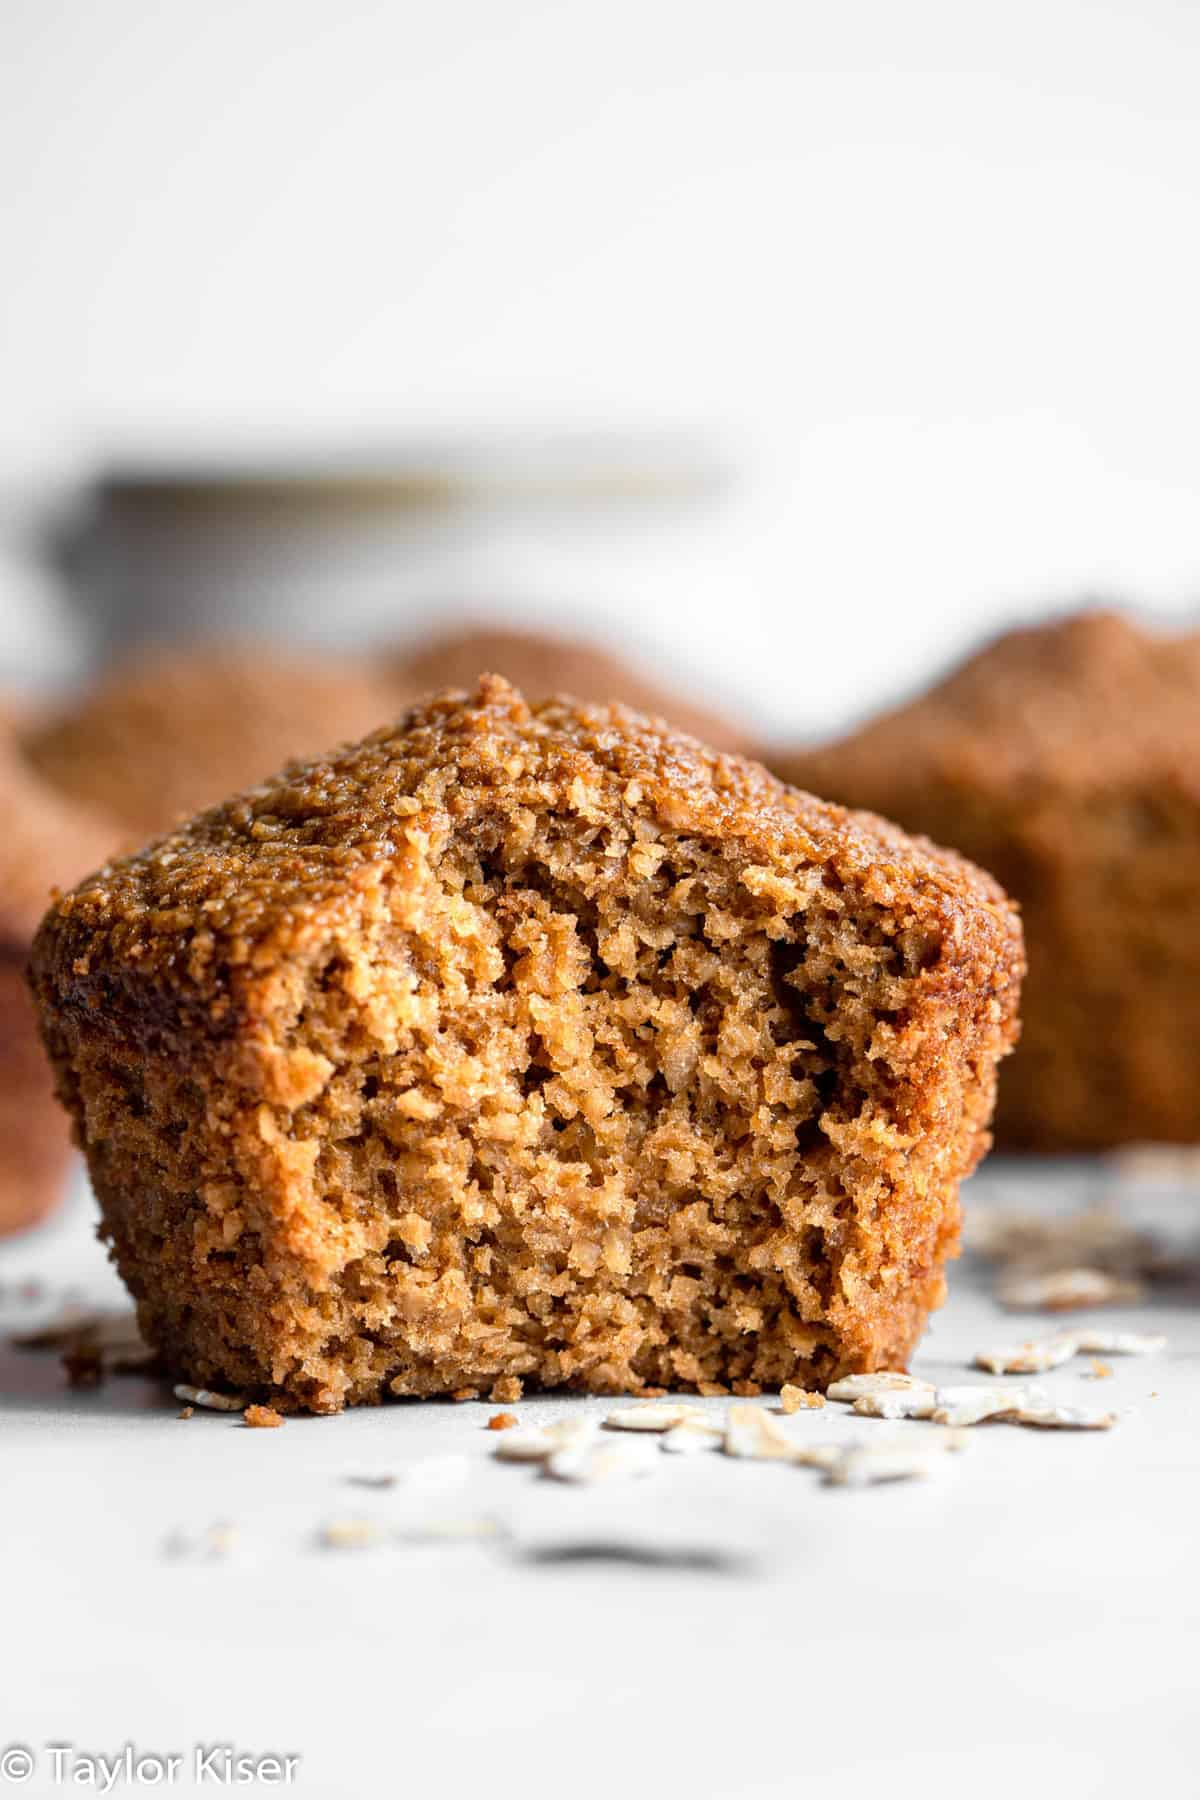 healthy oat bran muffins with a bite taken out of one